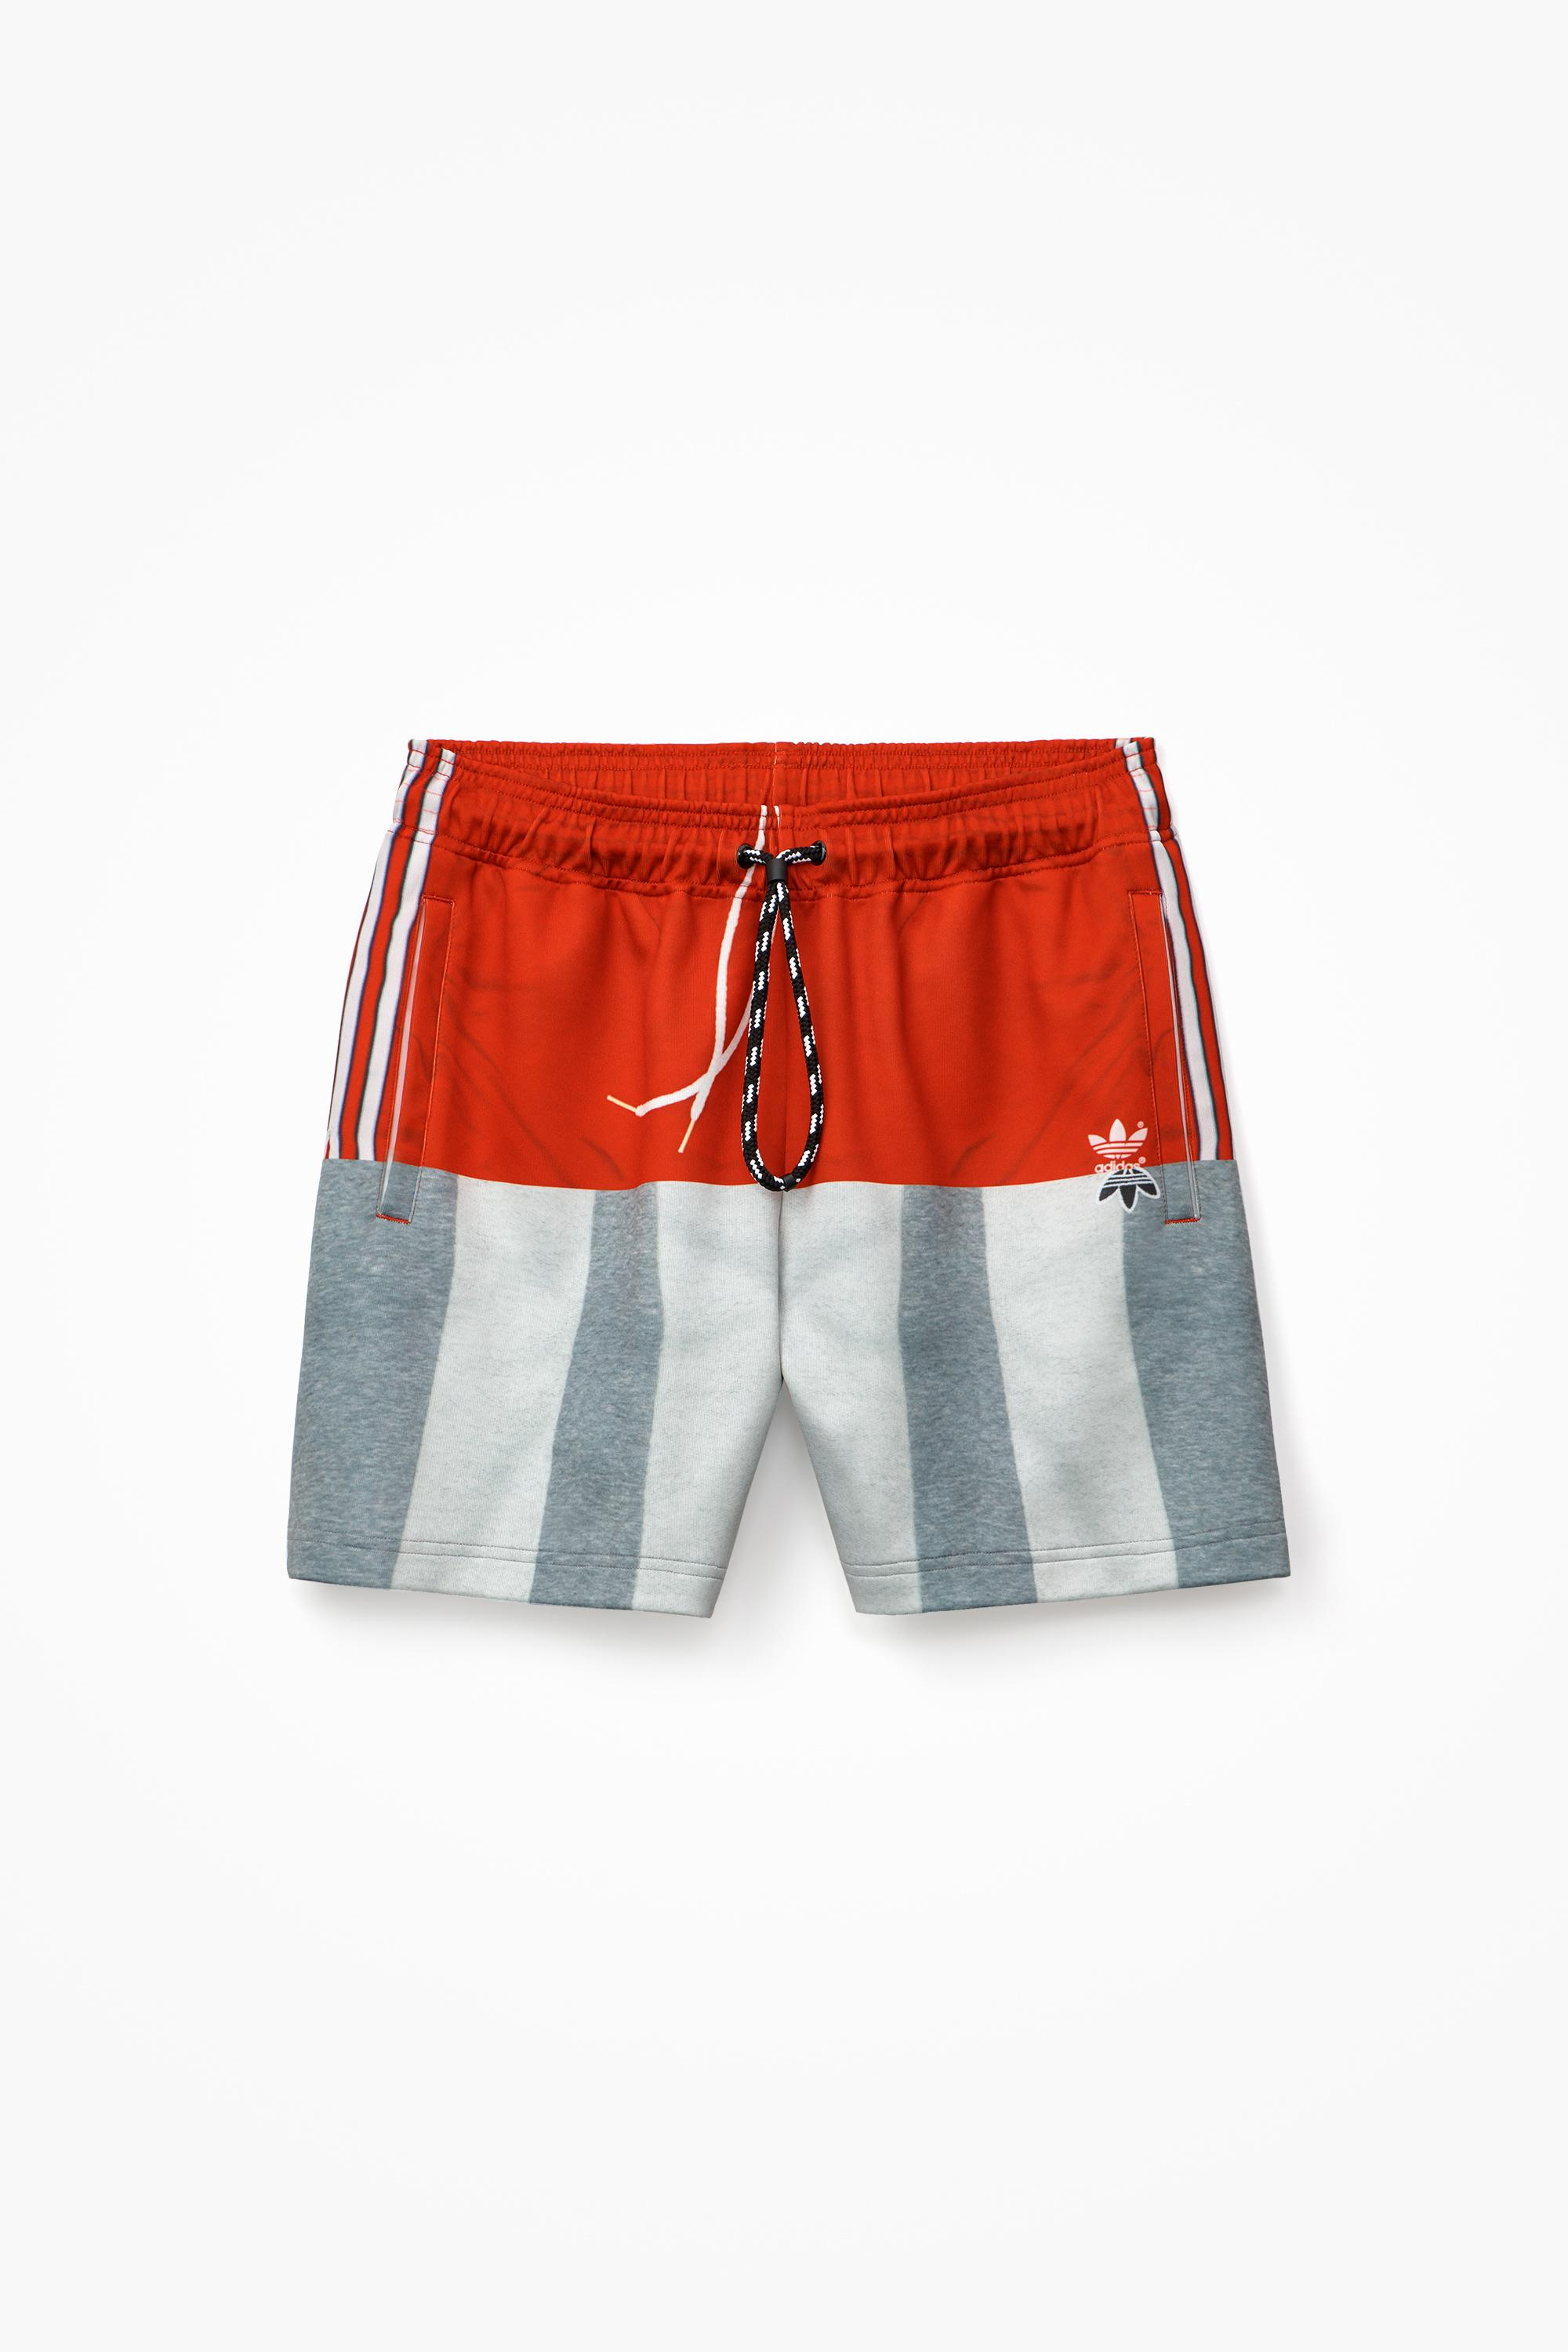 d8765fc43 ... Adidas Originals By Aw Photocopy Shorts for Men - Lyst. View fullscreen